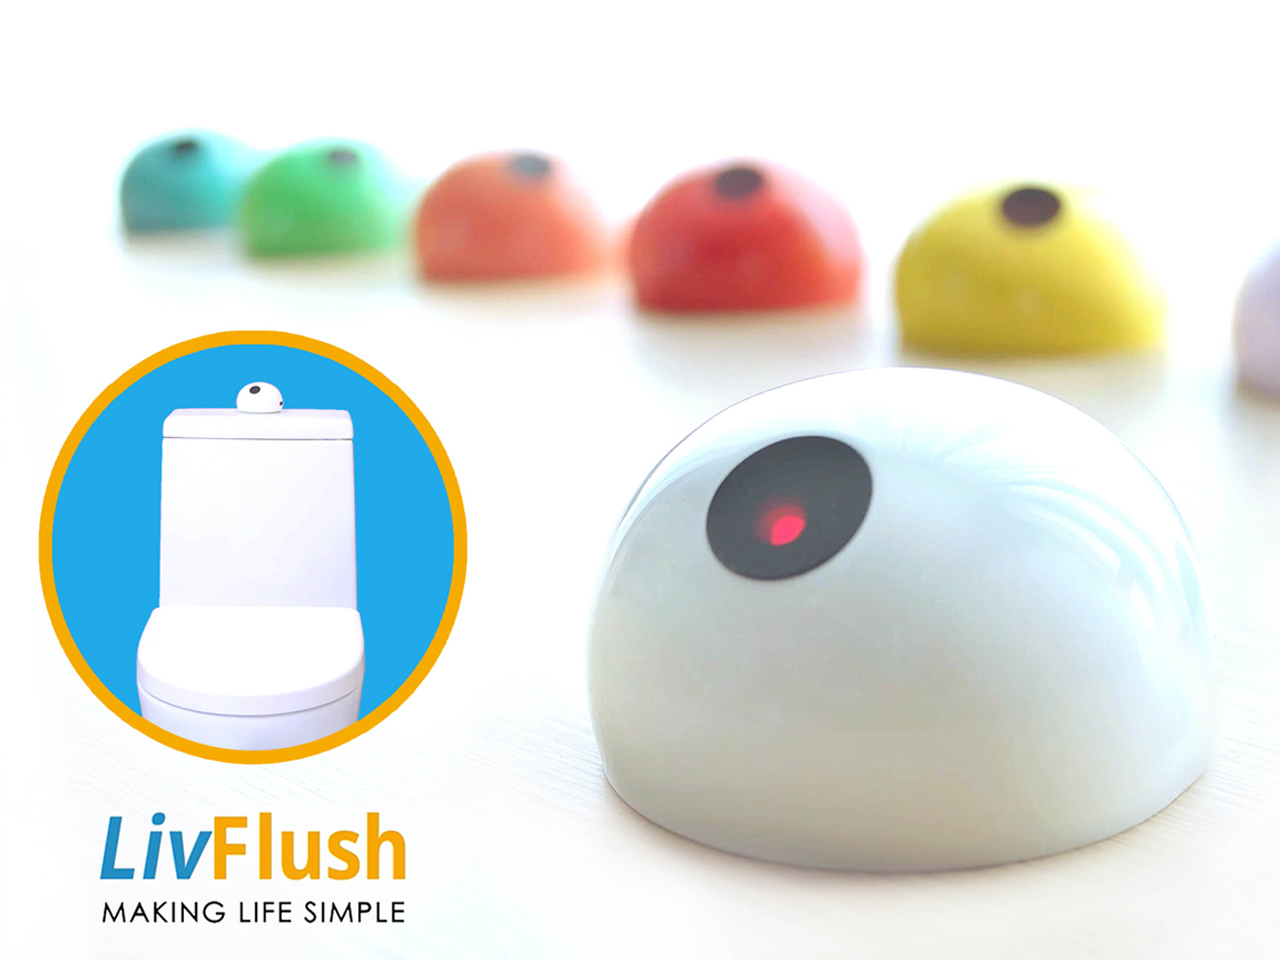 LivFlush Launches the World's First Add-On Touchless Home-Use Toilet Flush Sensor